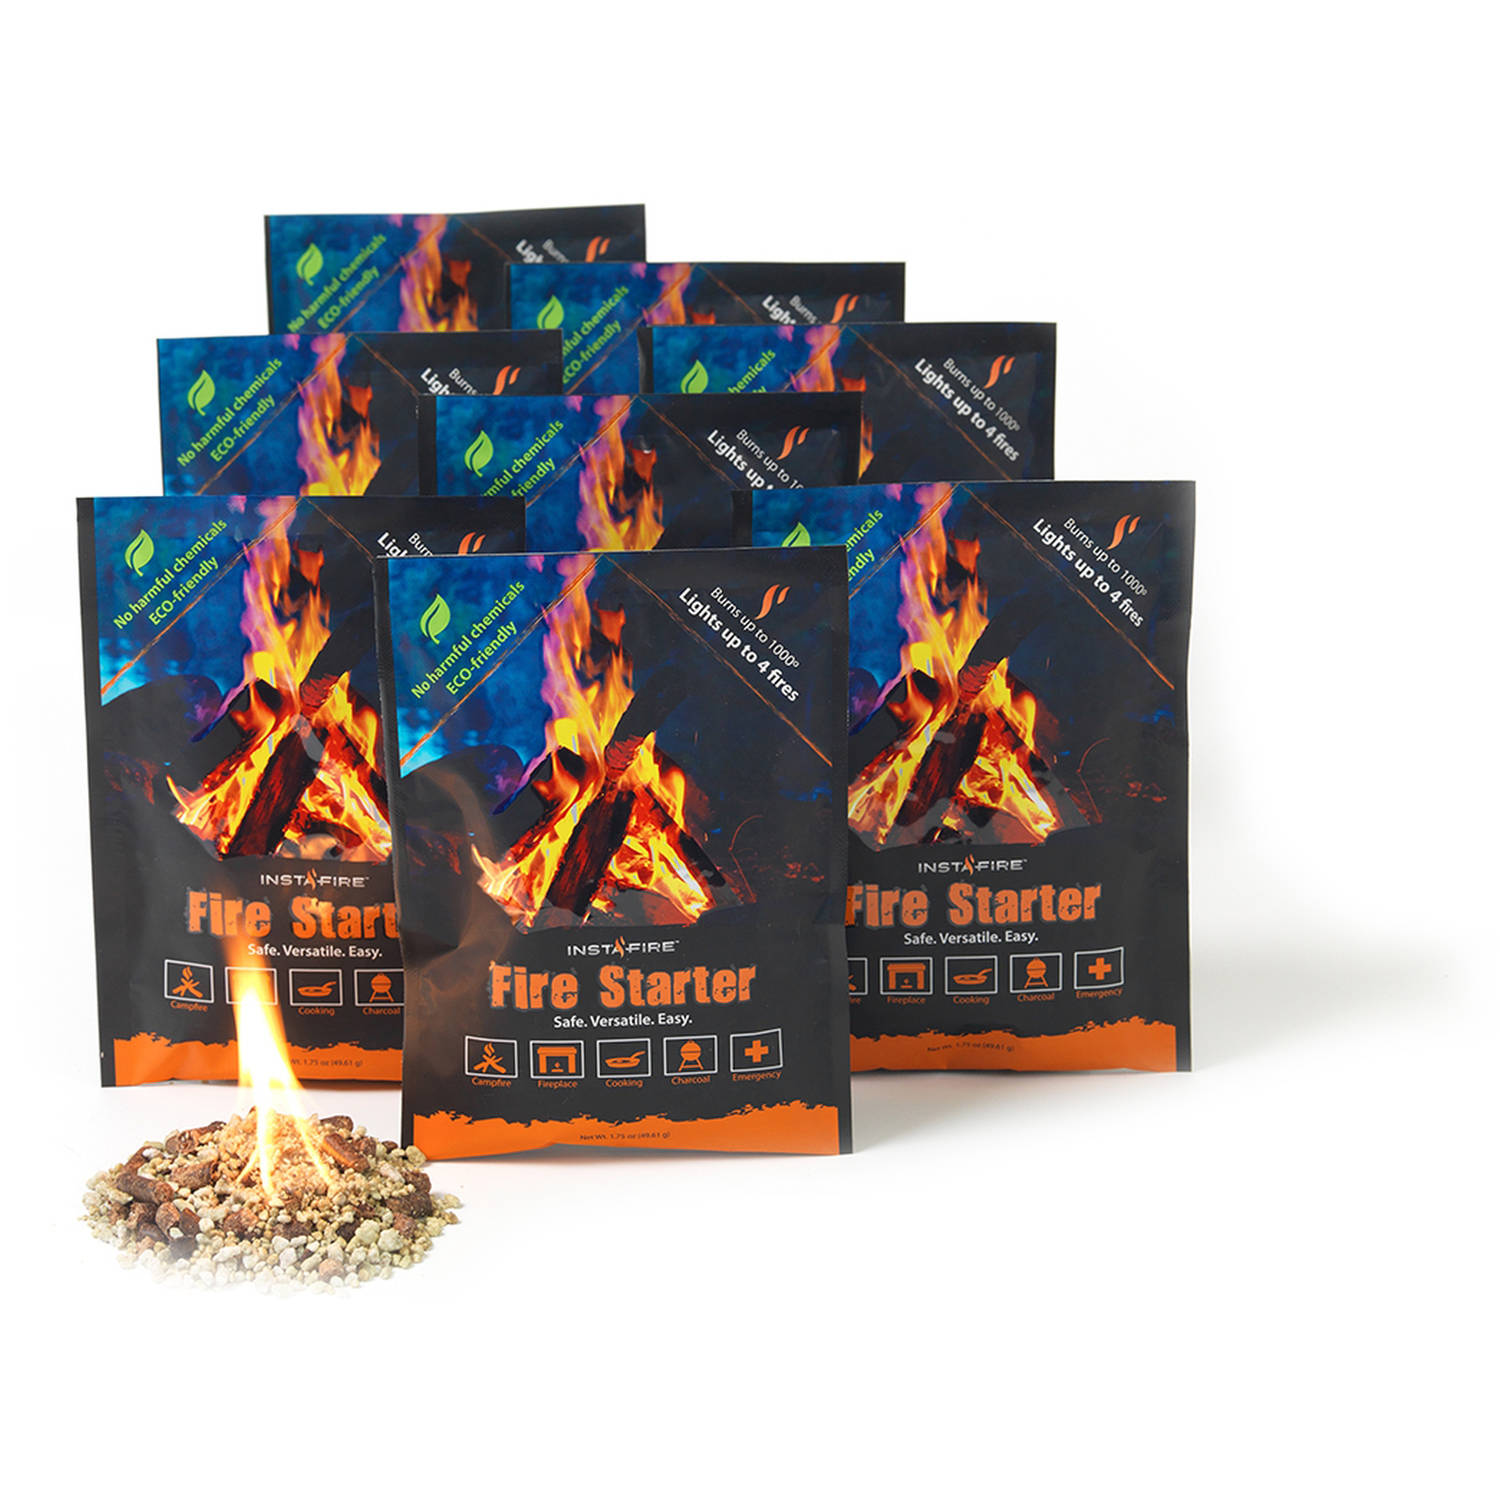 Insta Fire 8-Count Fire Starter by